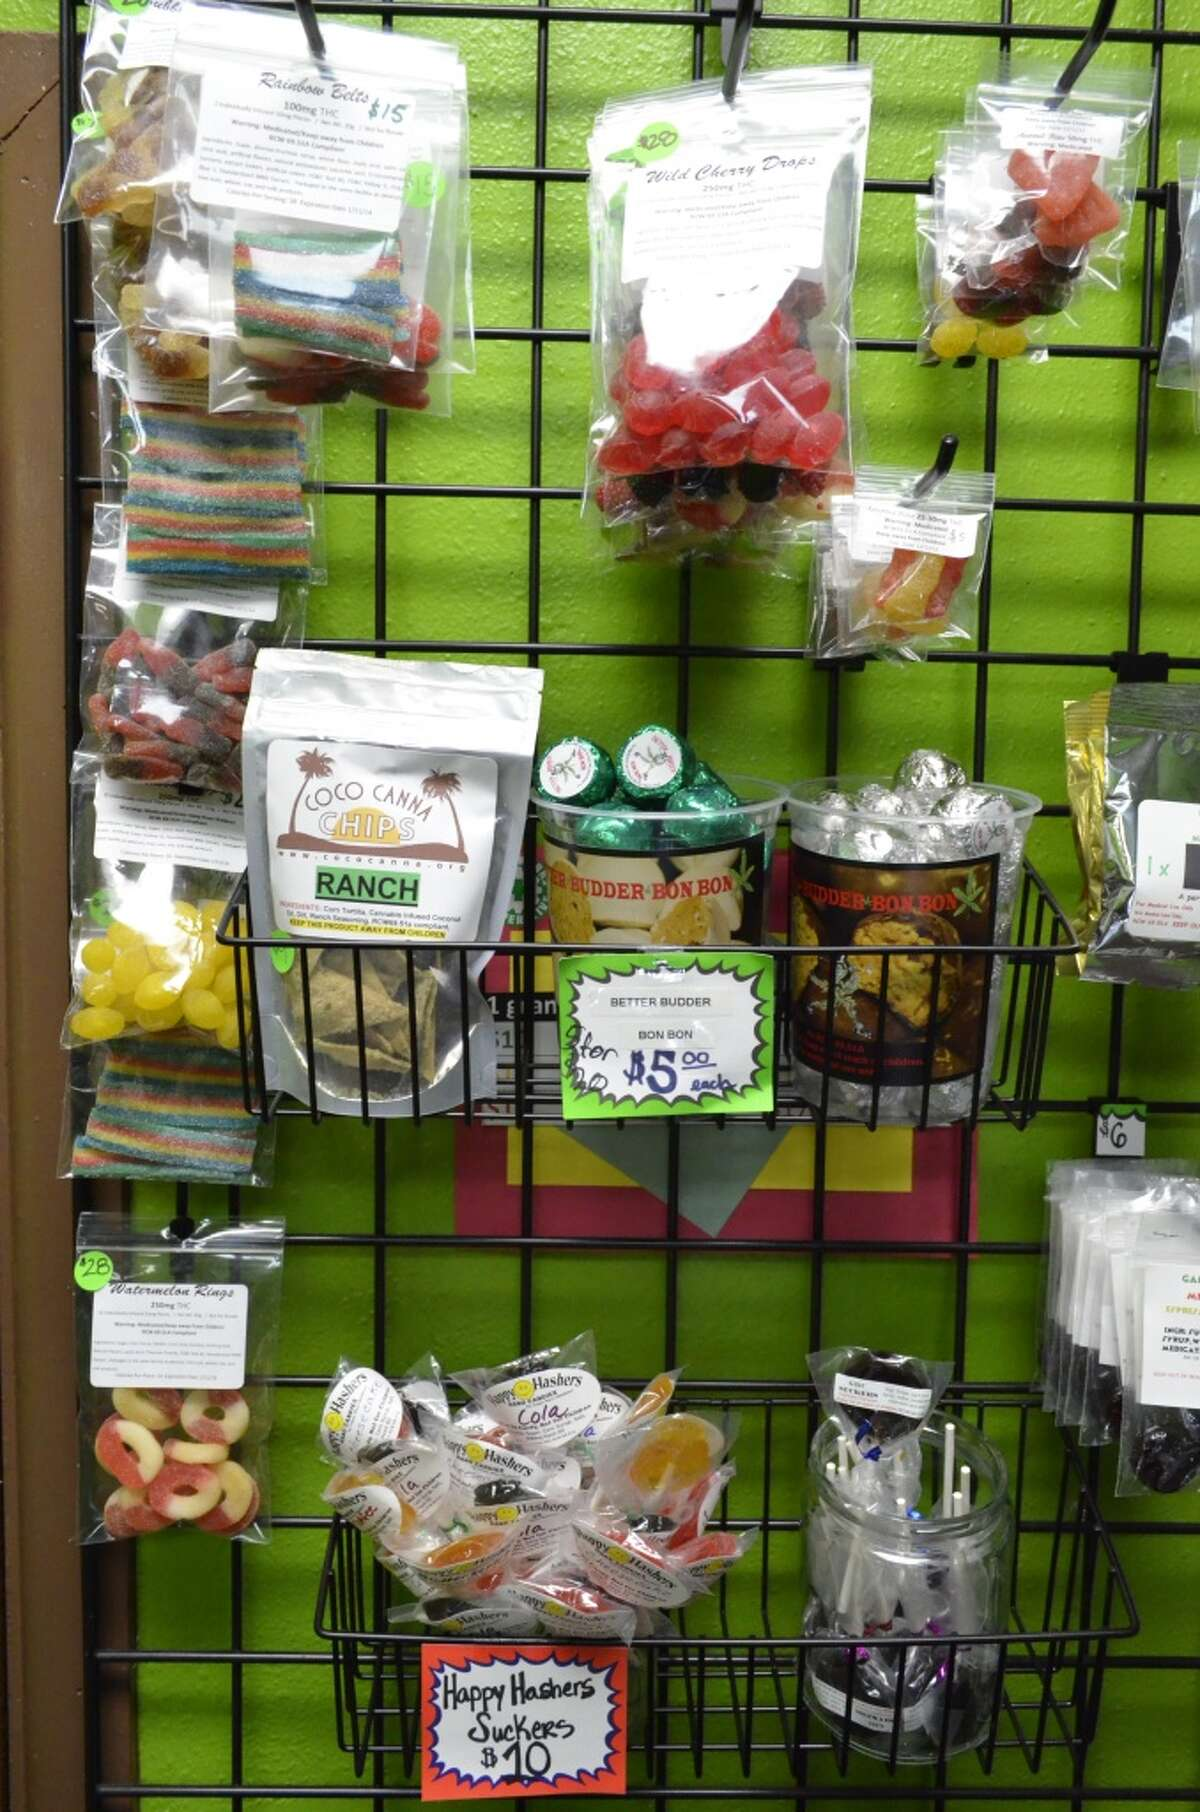 An example of the range of edibles available to medical marijuana patients. In just a few months, recreational users will have similar choices.